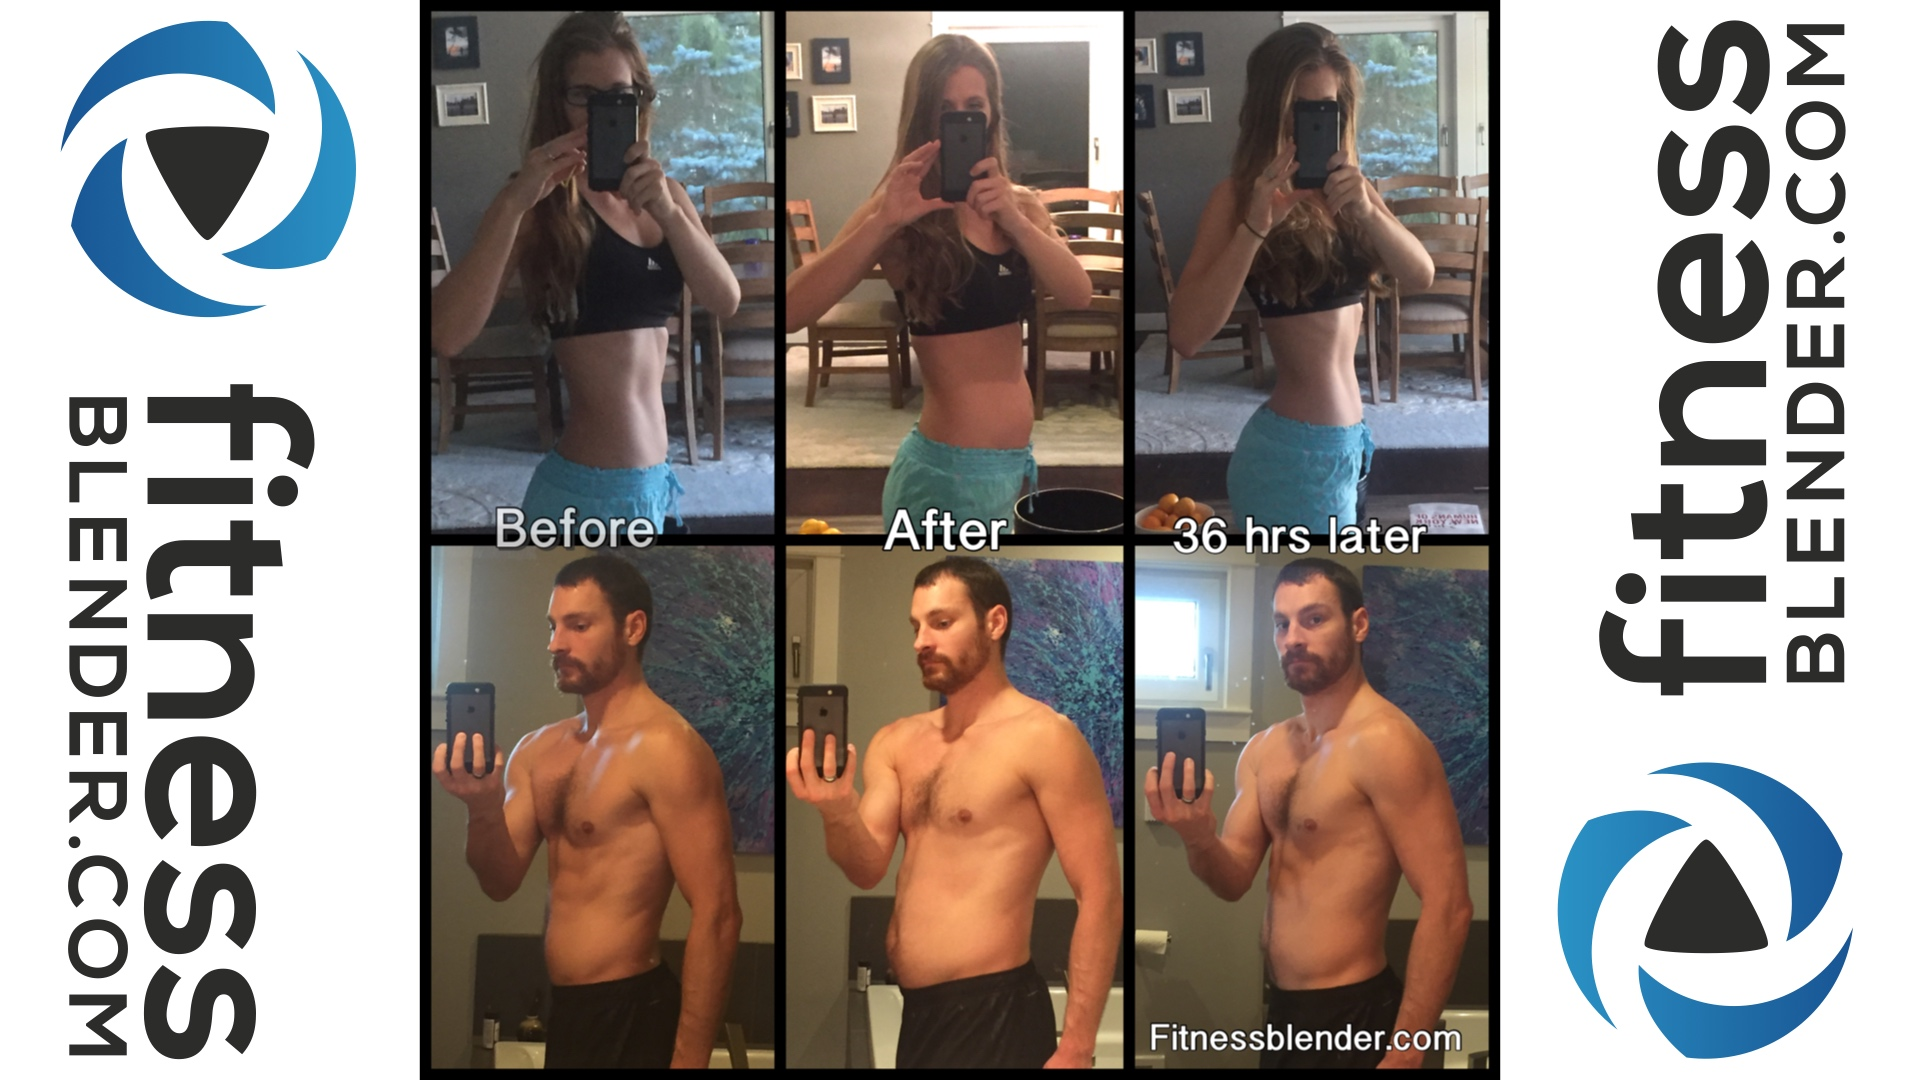 How to Burn Belly Fat Fast advise